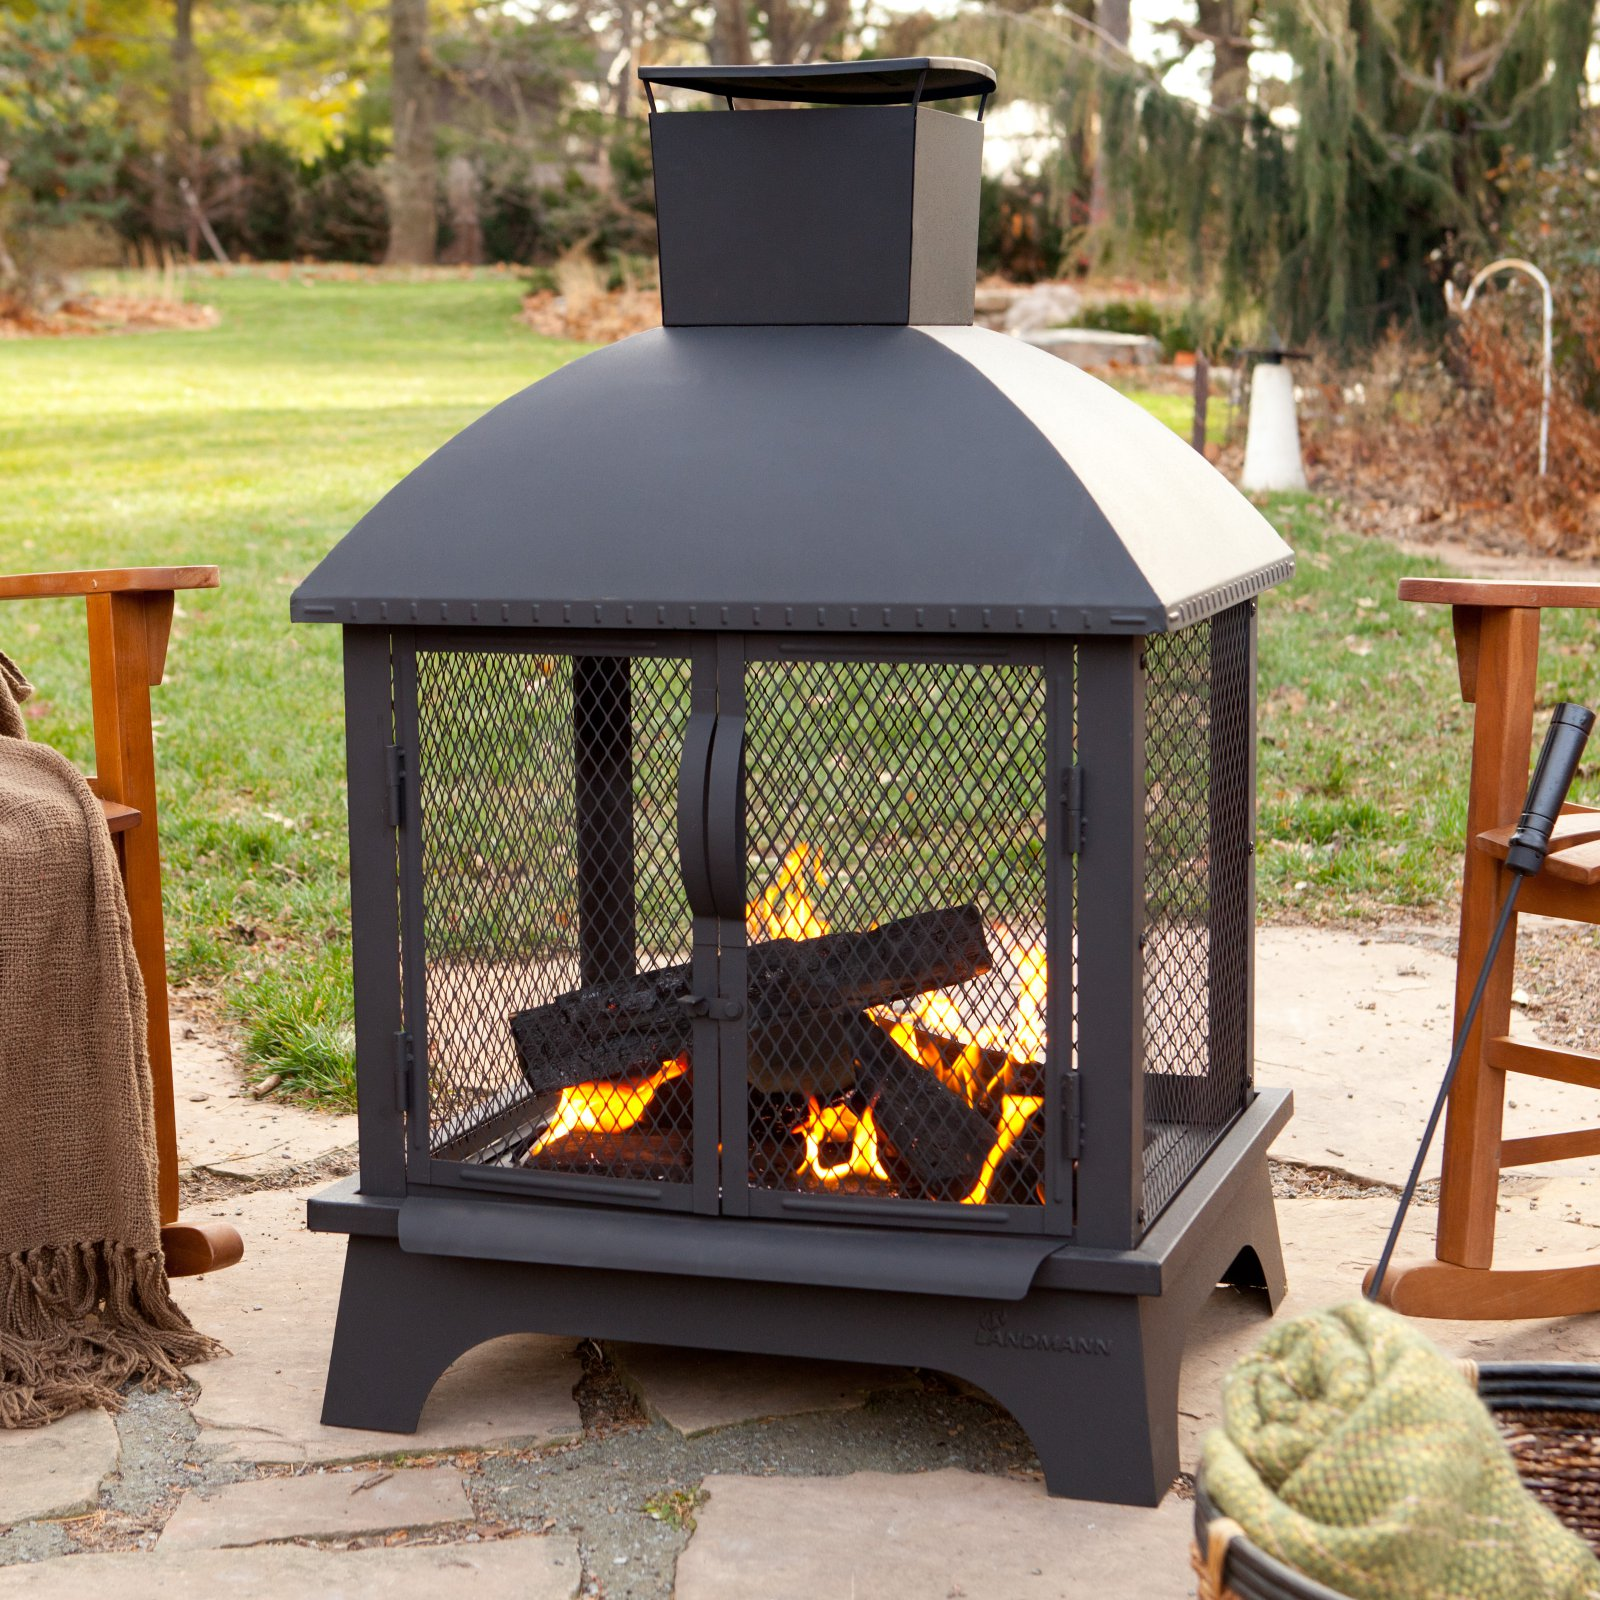 Landmann Redford Outdoor Fireplace by Landmann